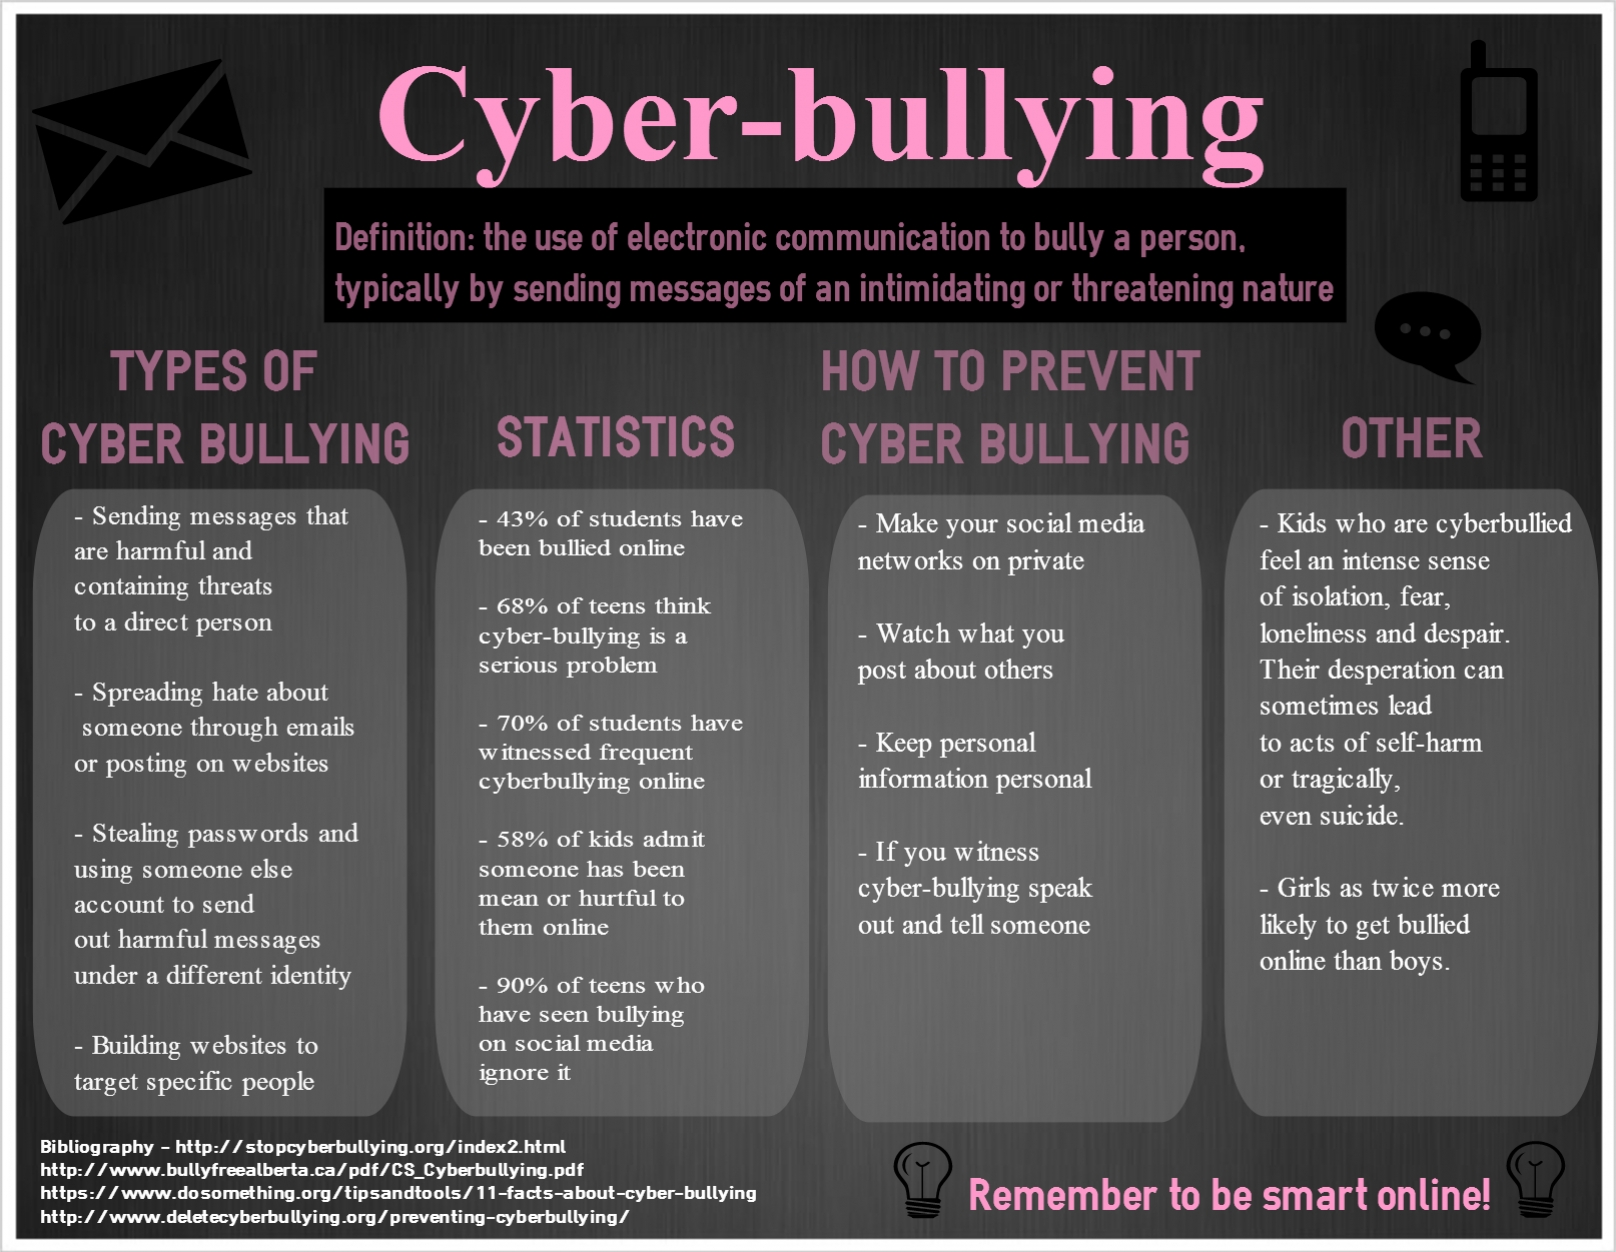 006 Cyberbullying Research Paper Awesome Questions Full